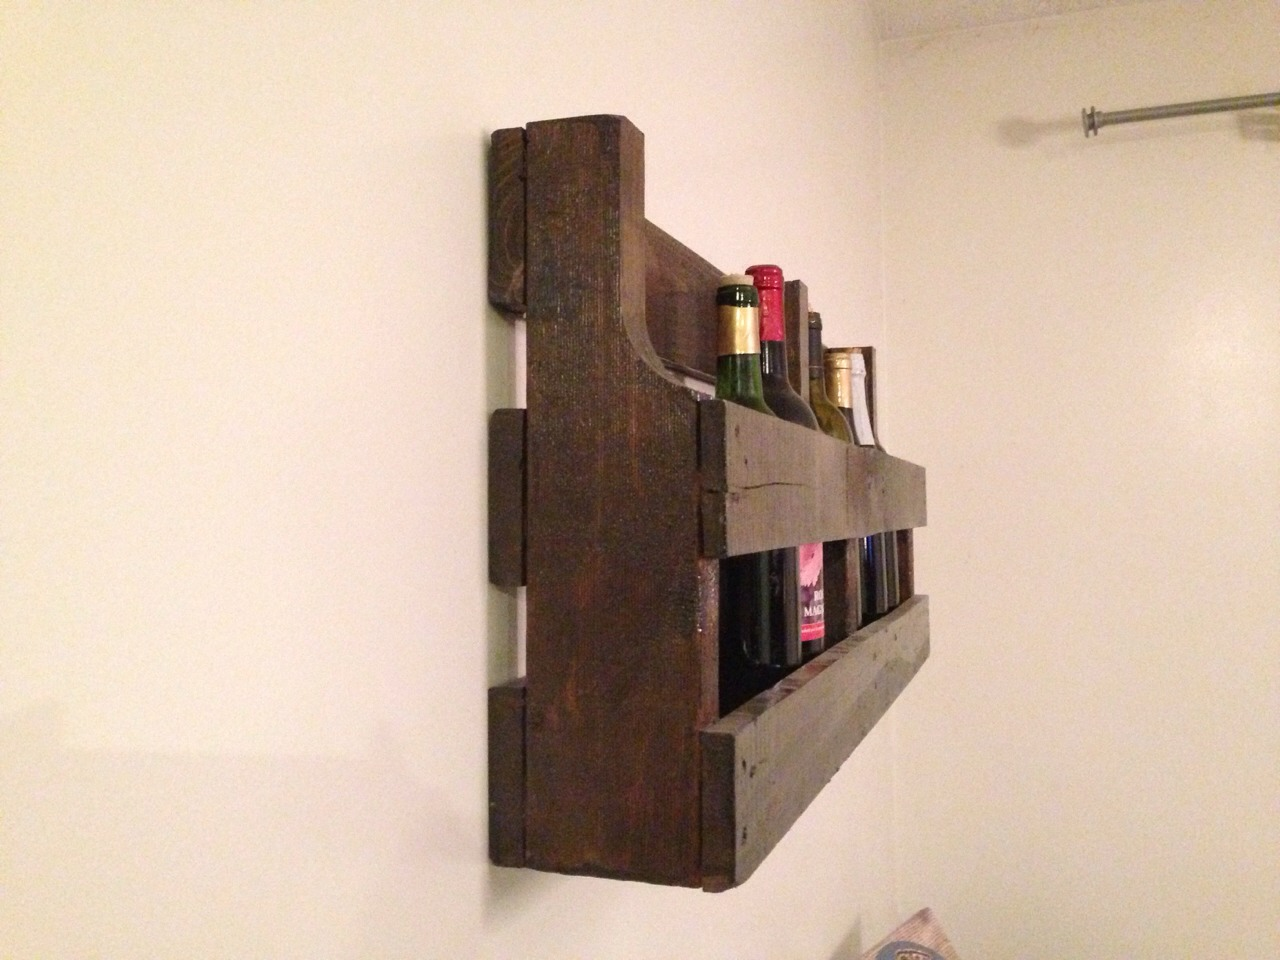 Side view of the wine rack..